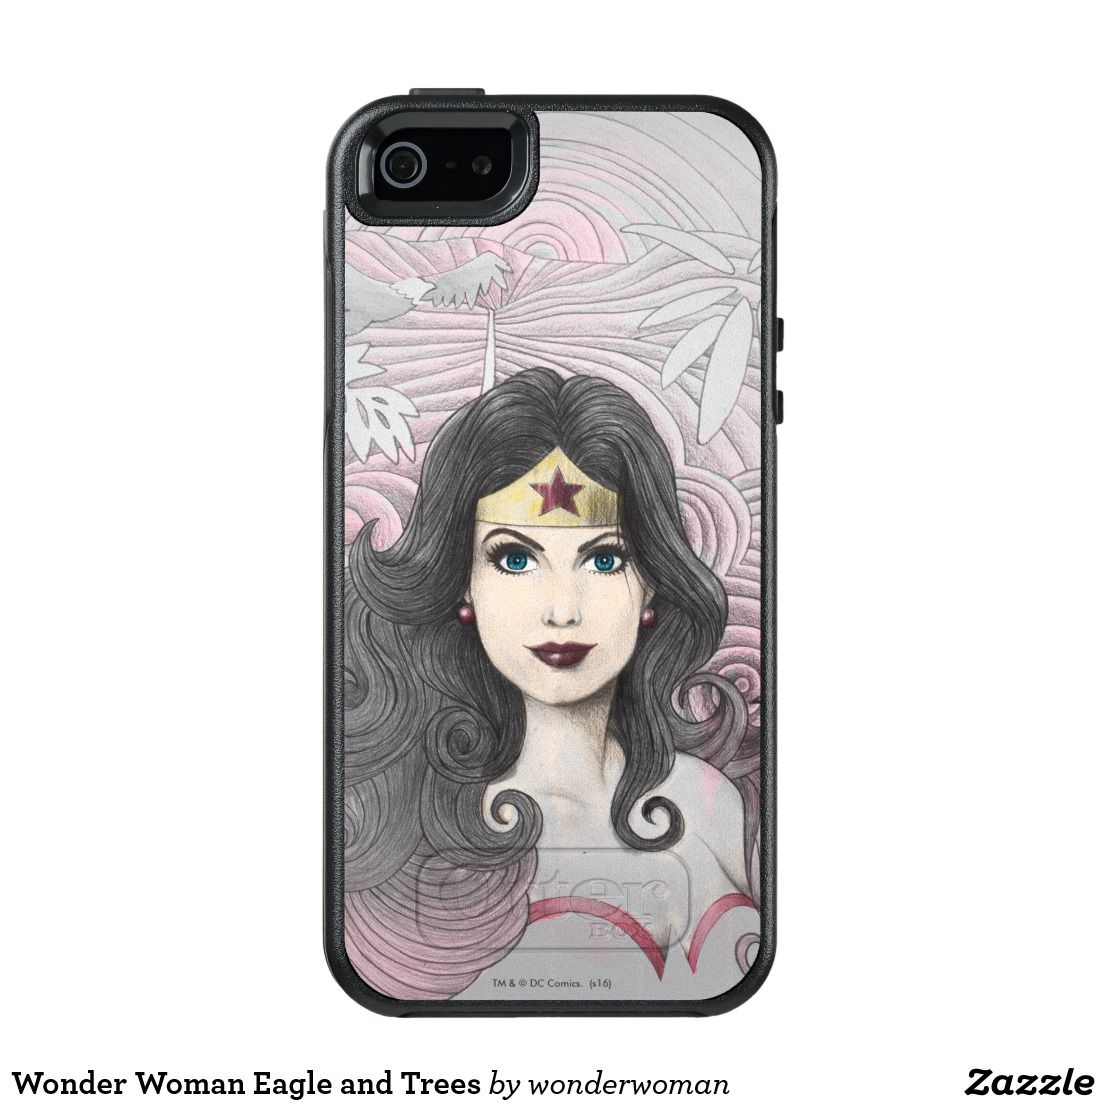 Wonder Woman Eagle and Trees OtterBox iPhone 5 5s SE Case. Awesome retro  and classic Wonder Women art from DC Comics. Unique superheroine designs to  ... 8aa9b135ca